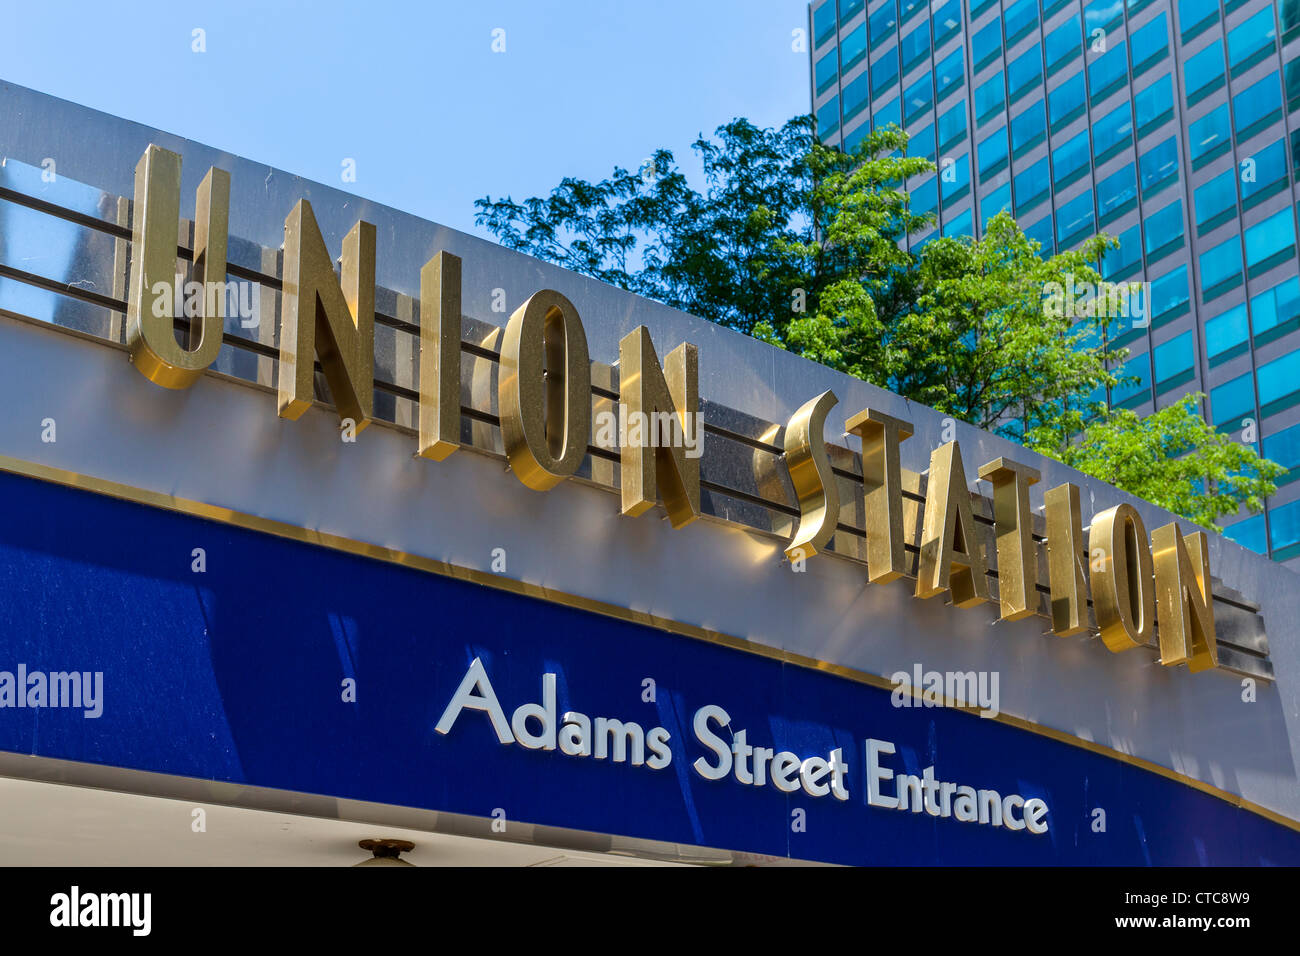 Sign over the Adams Street Entrance to Union Station, Chicago, Illinois, USA - Stock Image